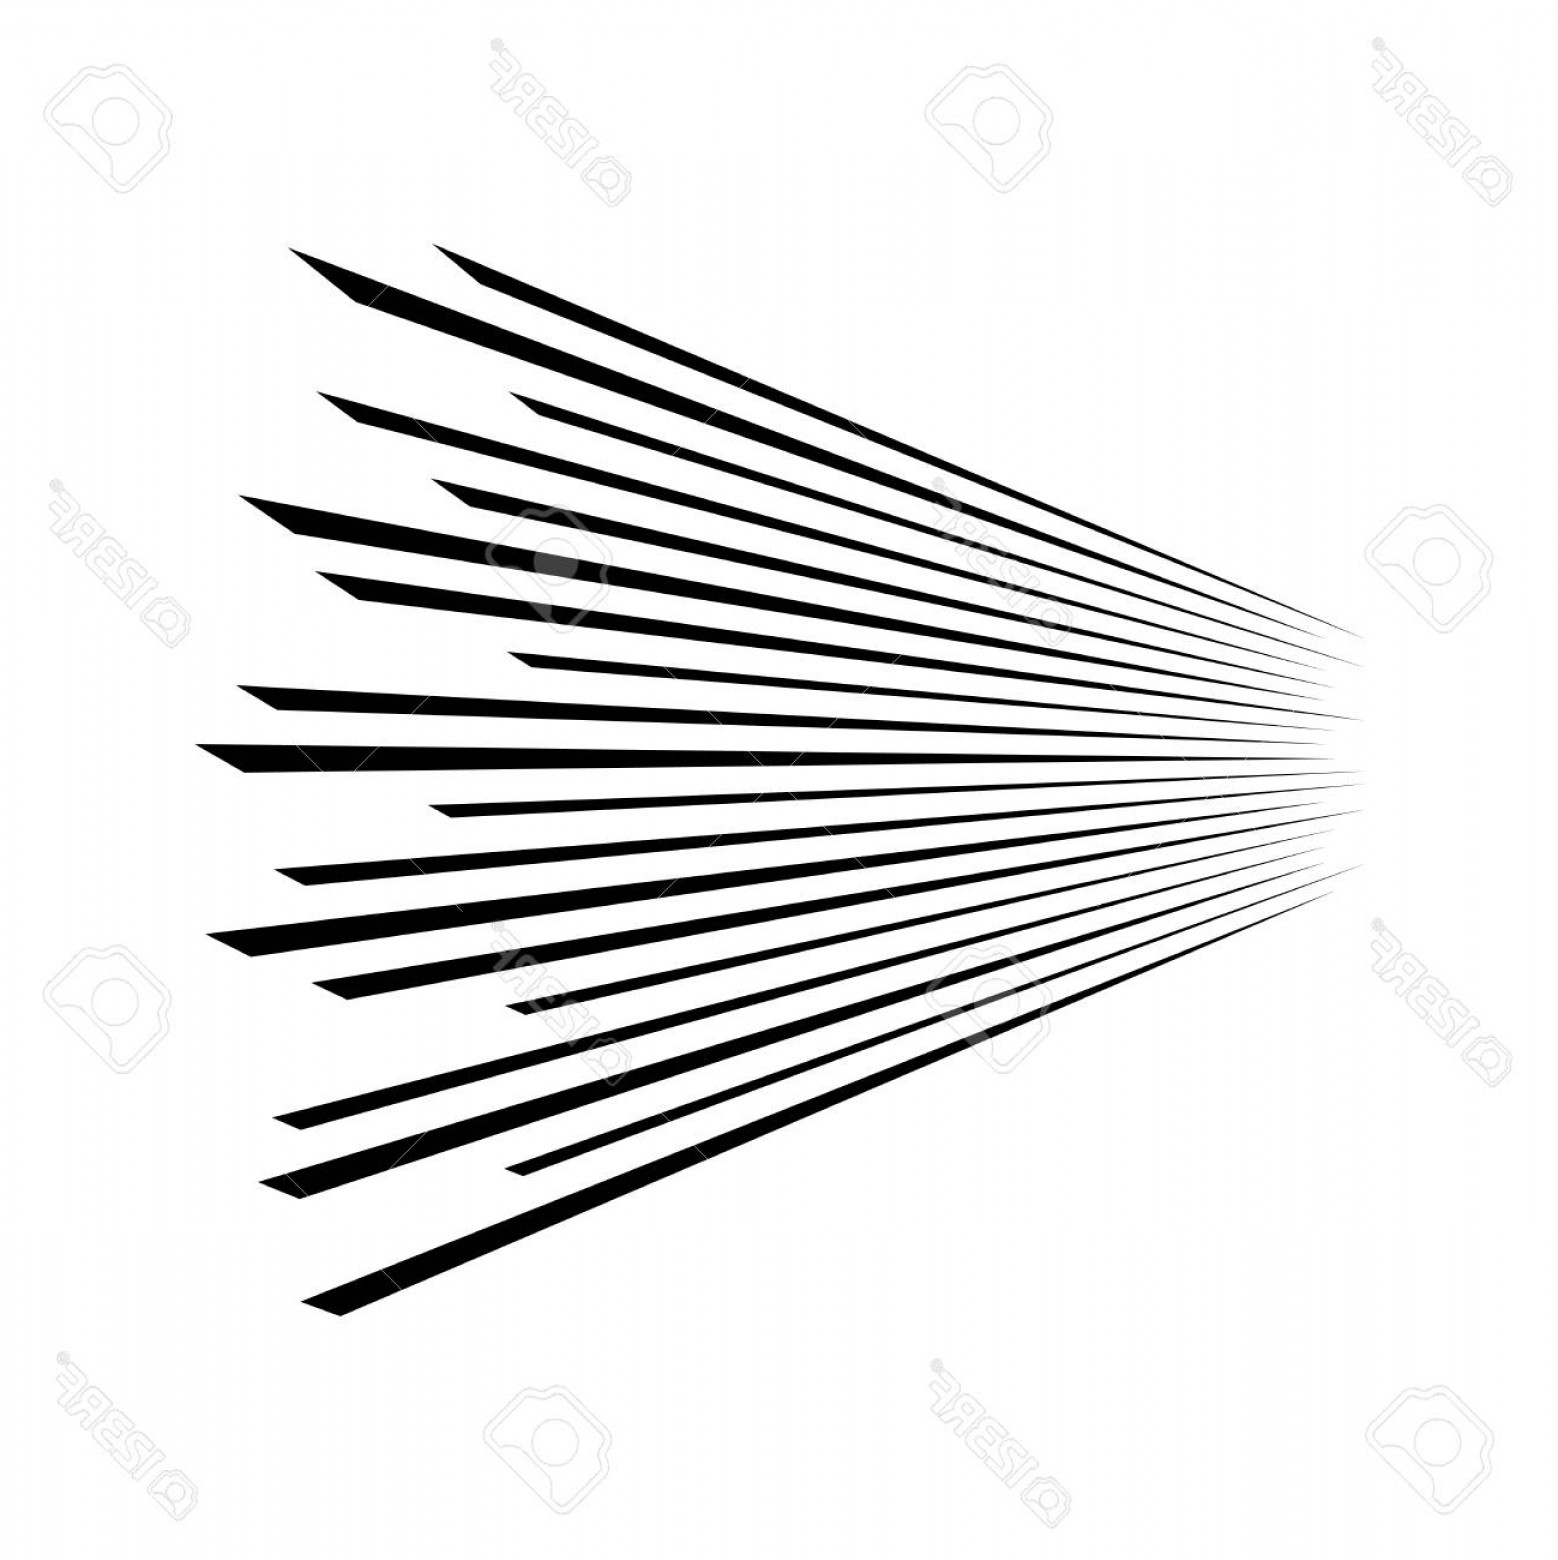 Perspective Vector: Photostock Vector Speed Lines On Abstract Background Lines In Perspective Vector